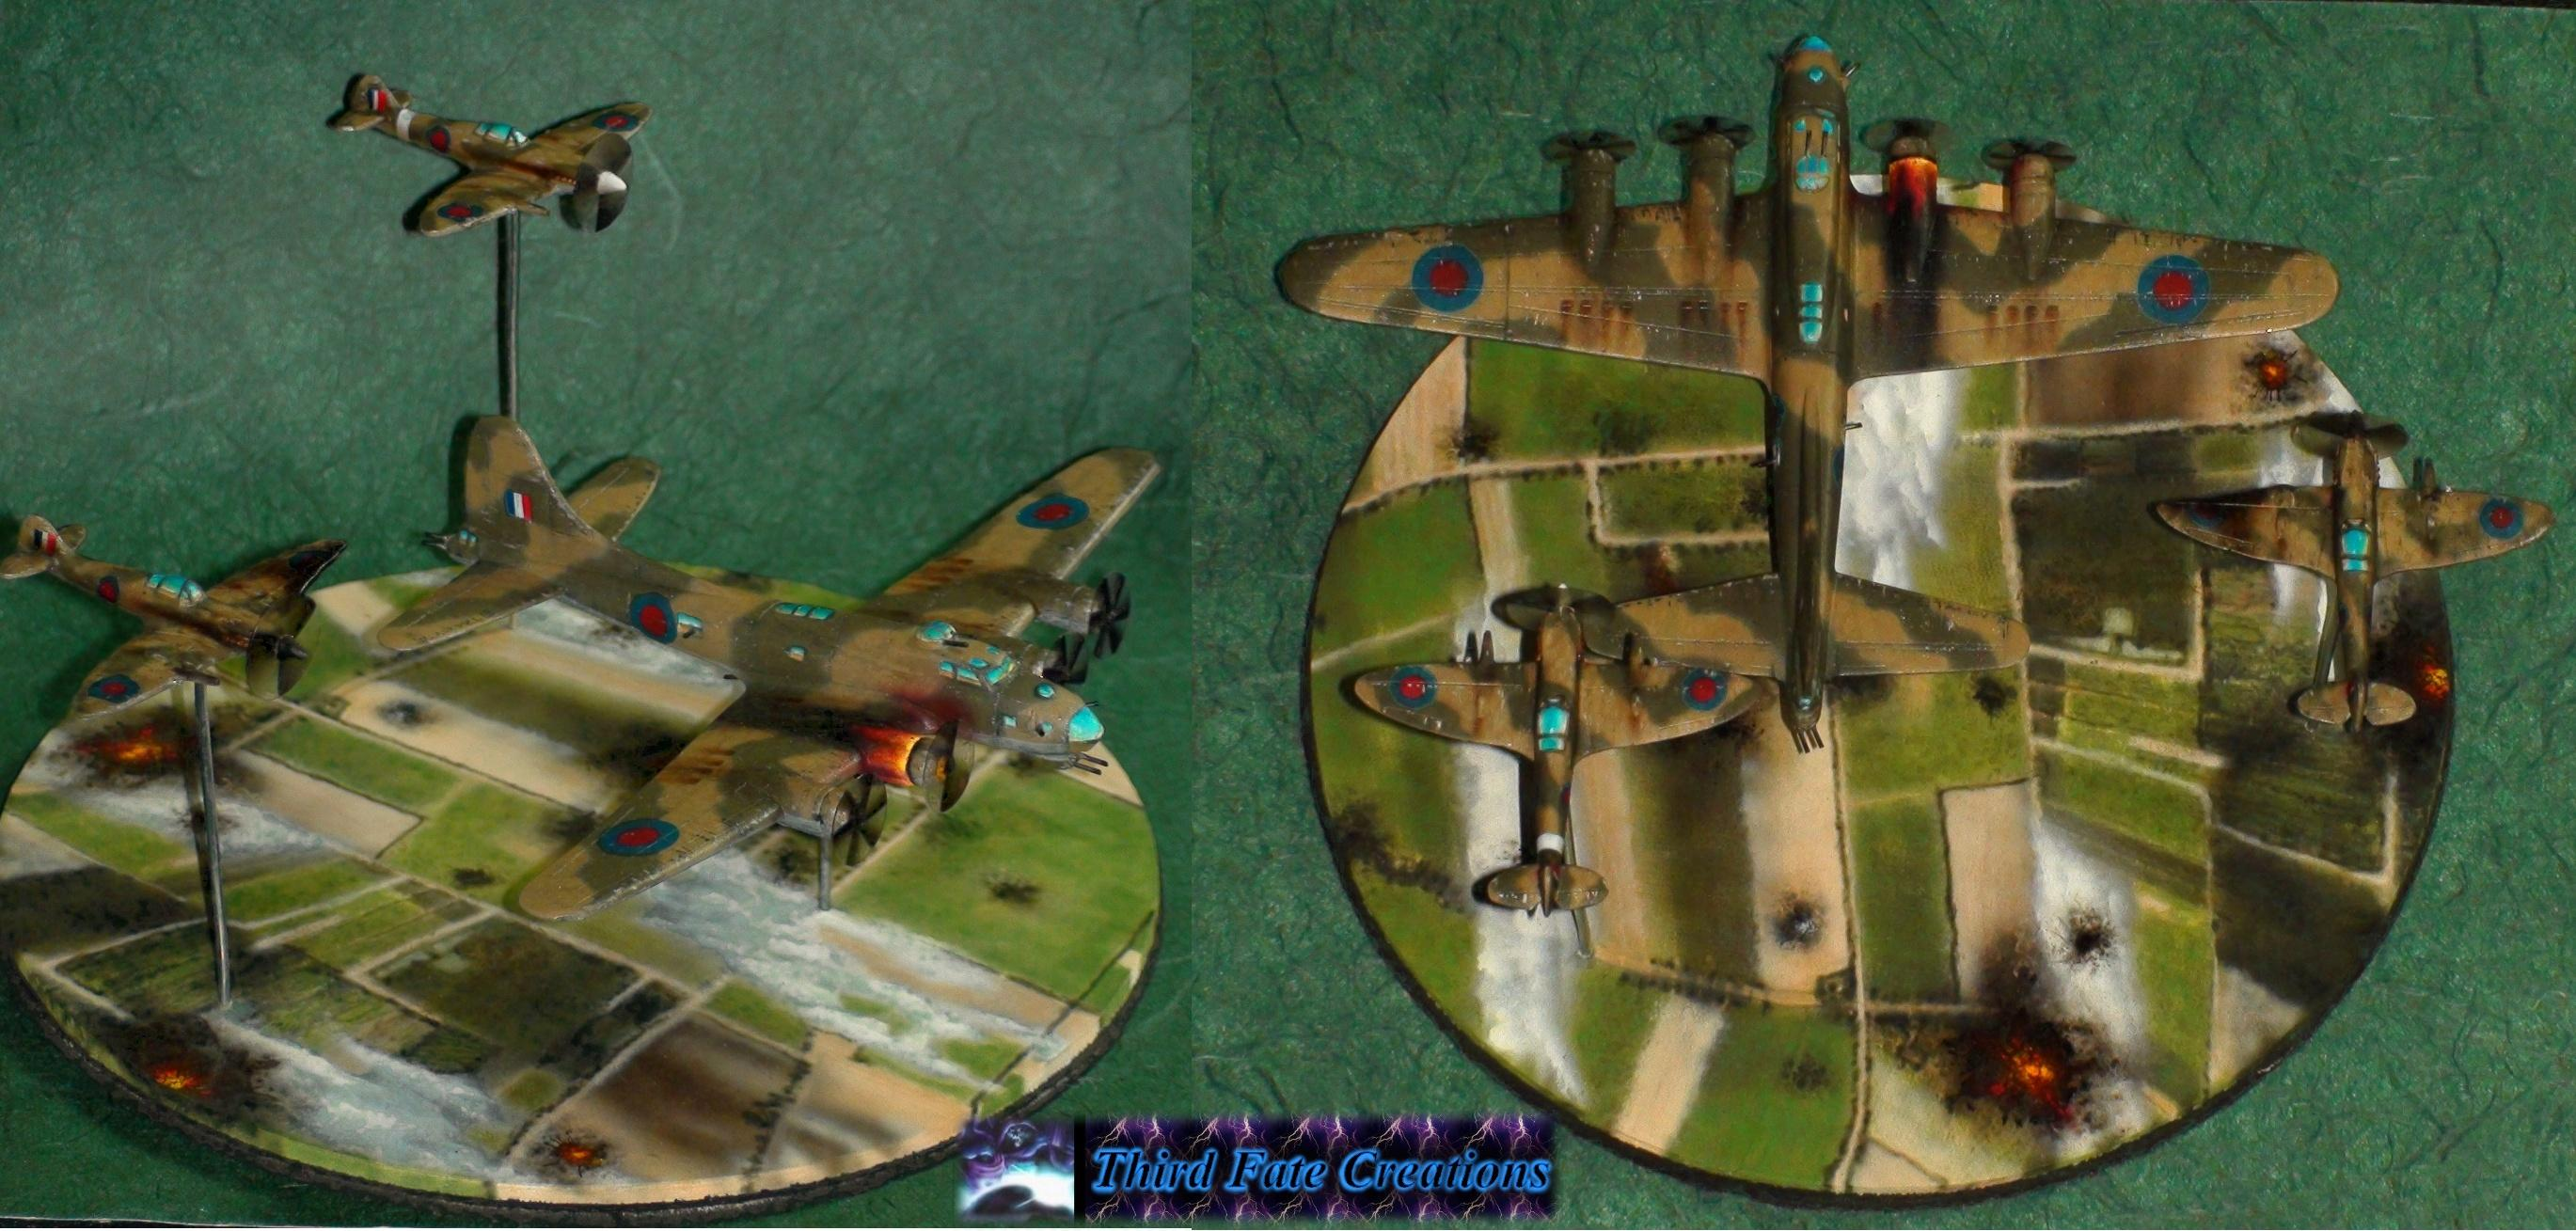 Bomber, Diorama, Planes, World War 2